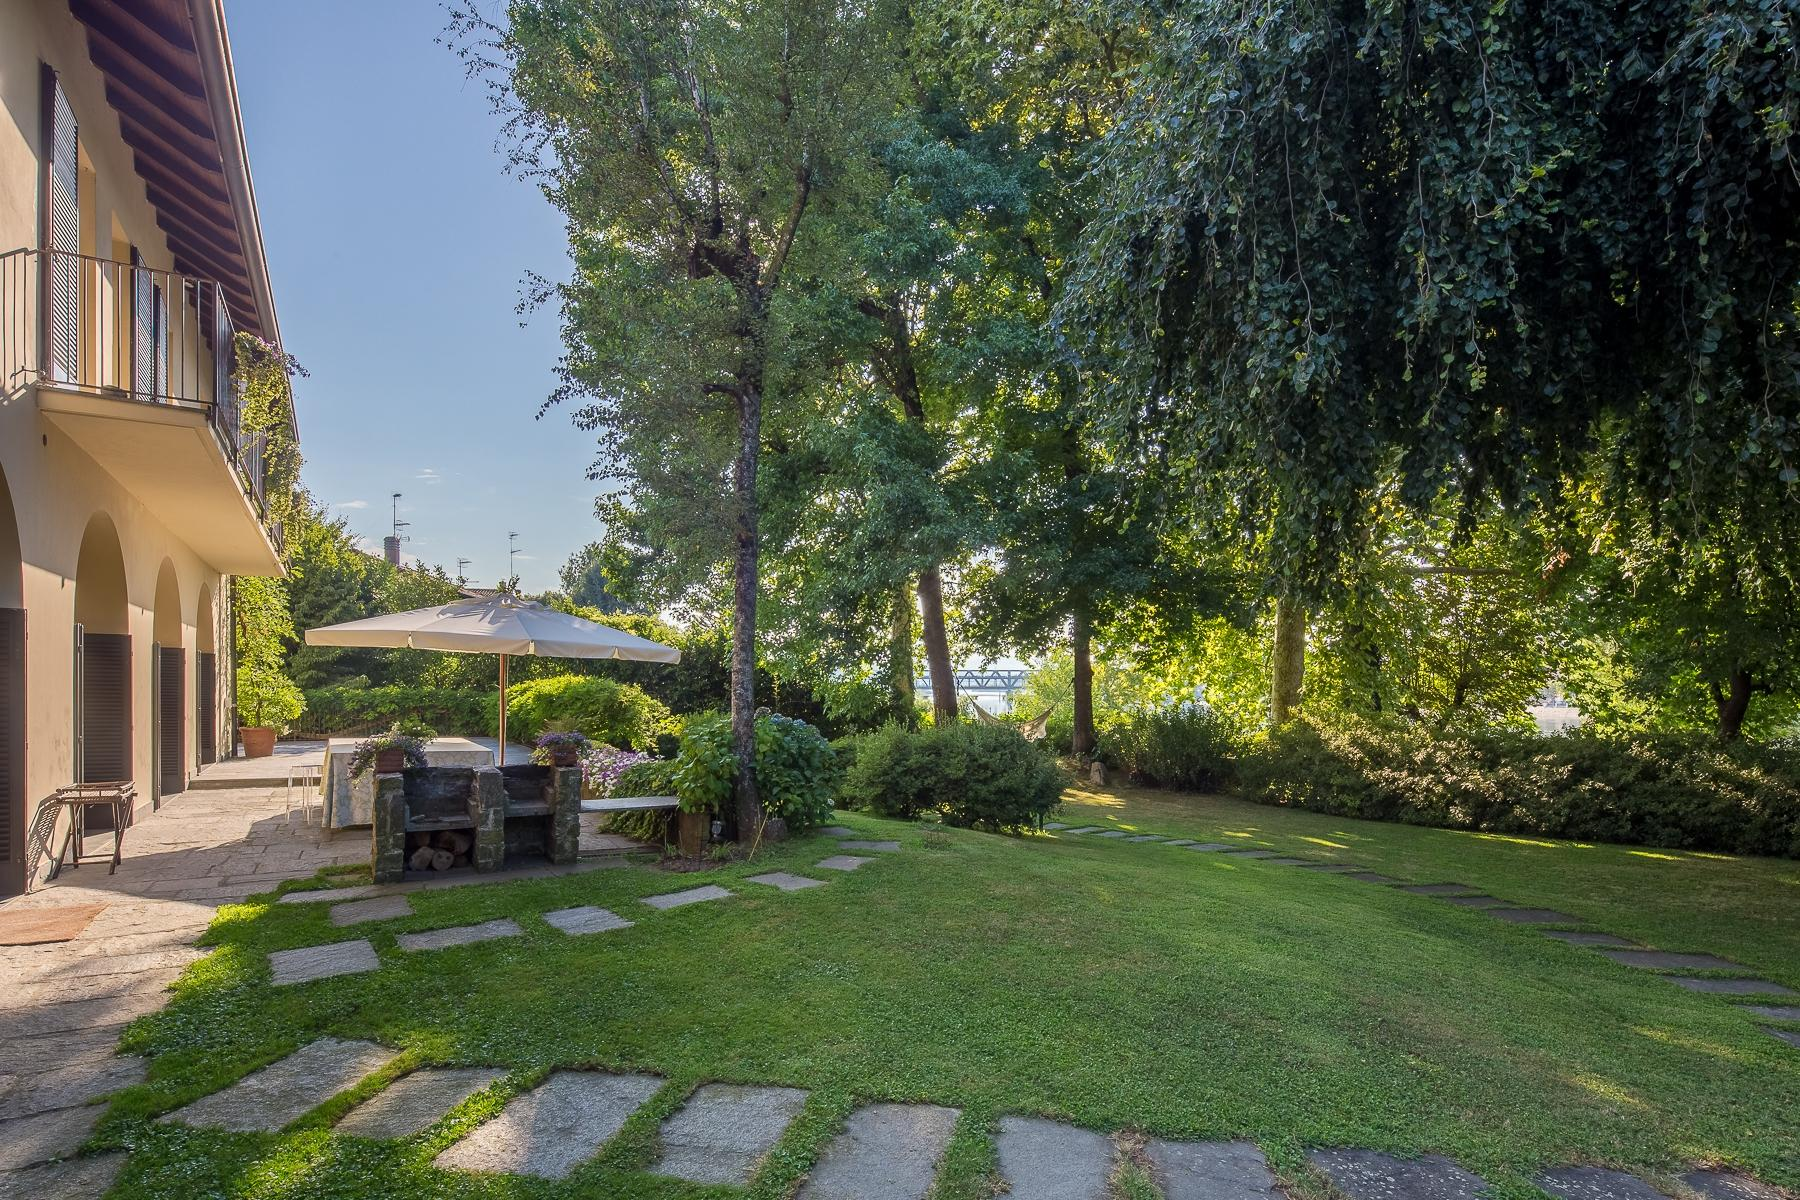 Villa with swimming pool on the Ticino river - 6